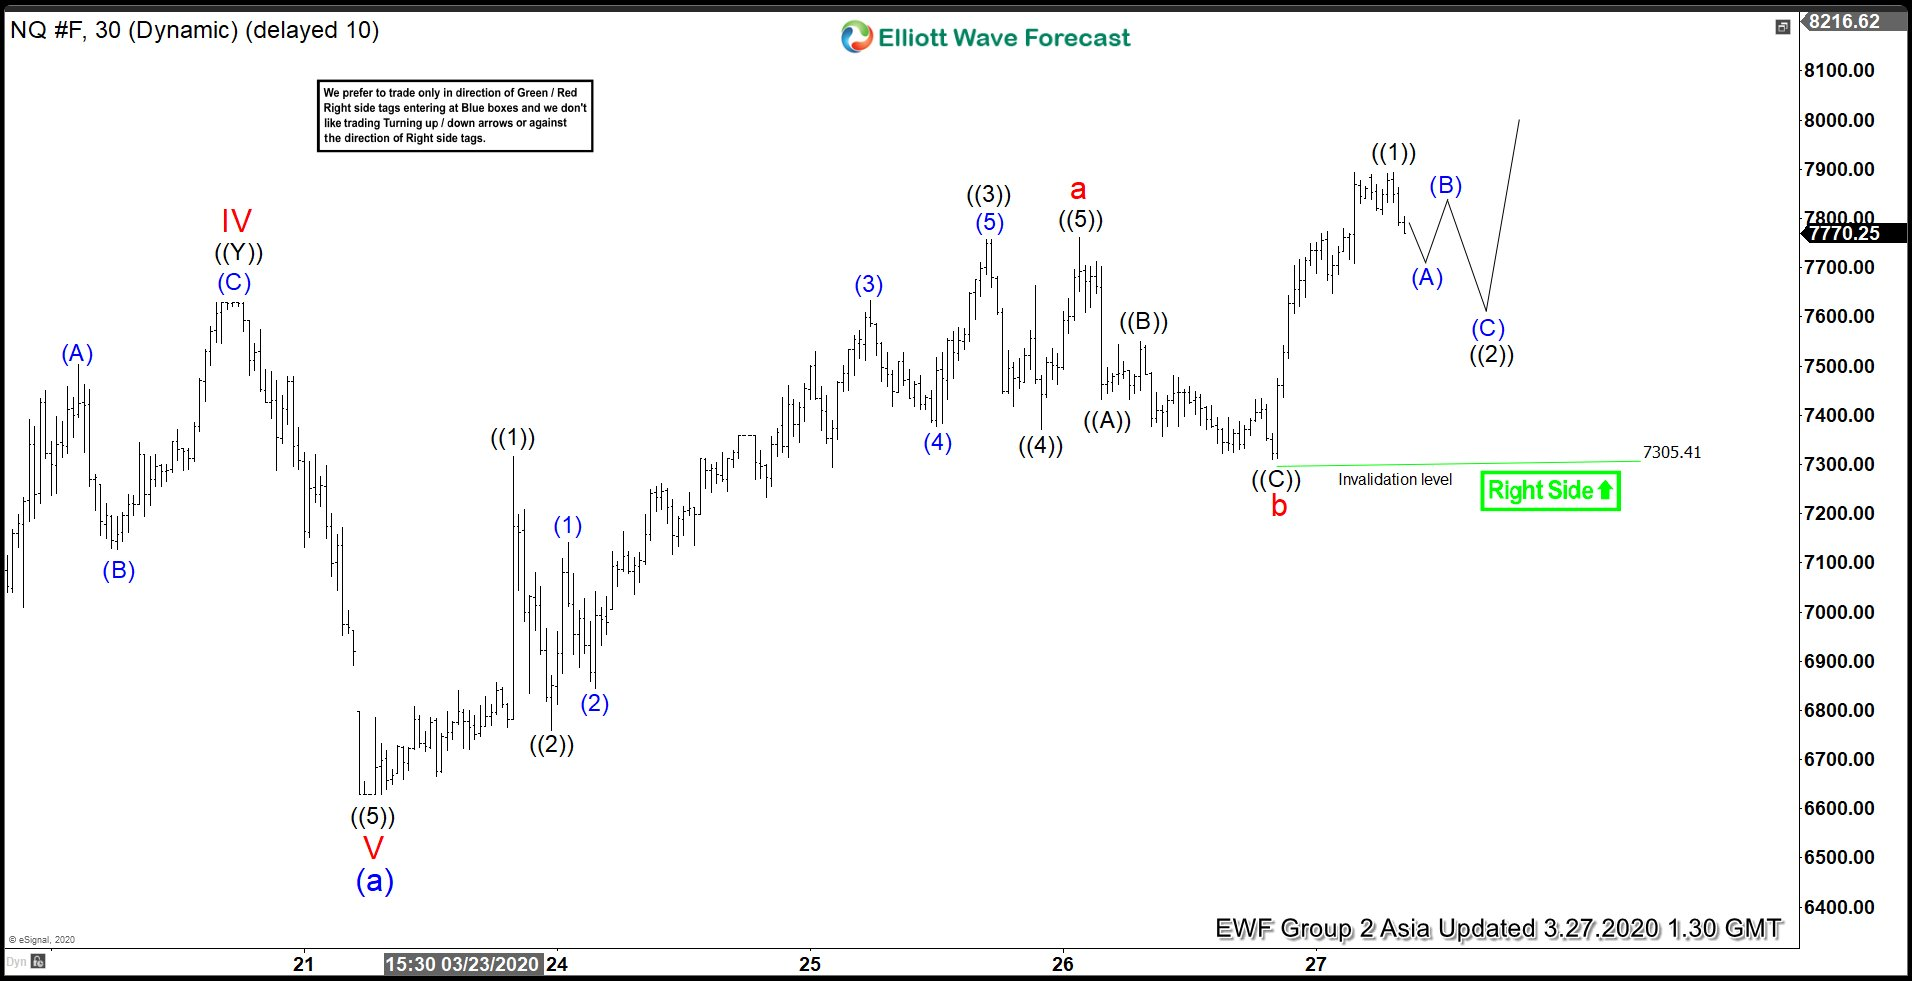 Elliott Wave View: Nasdaq Bounce In Progress